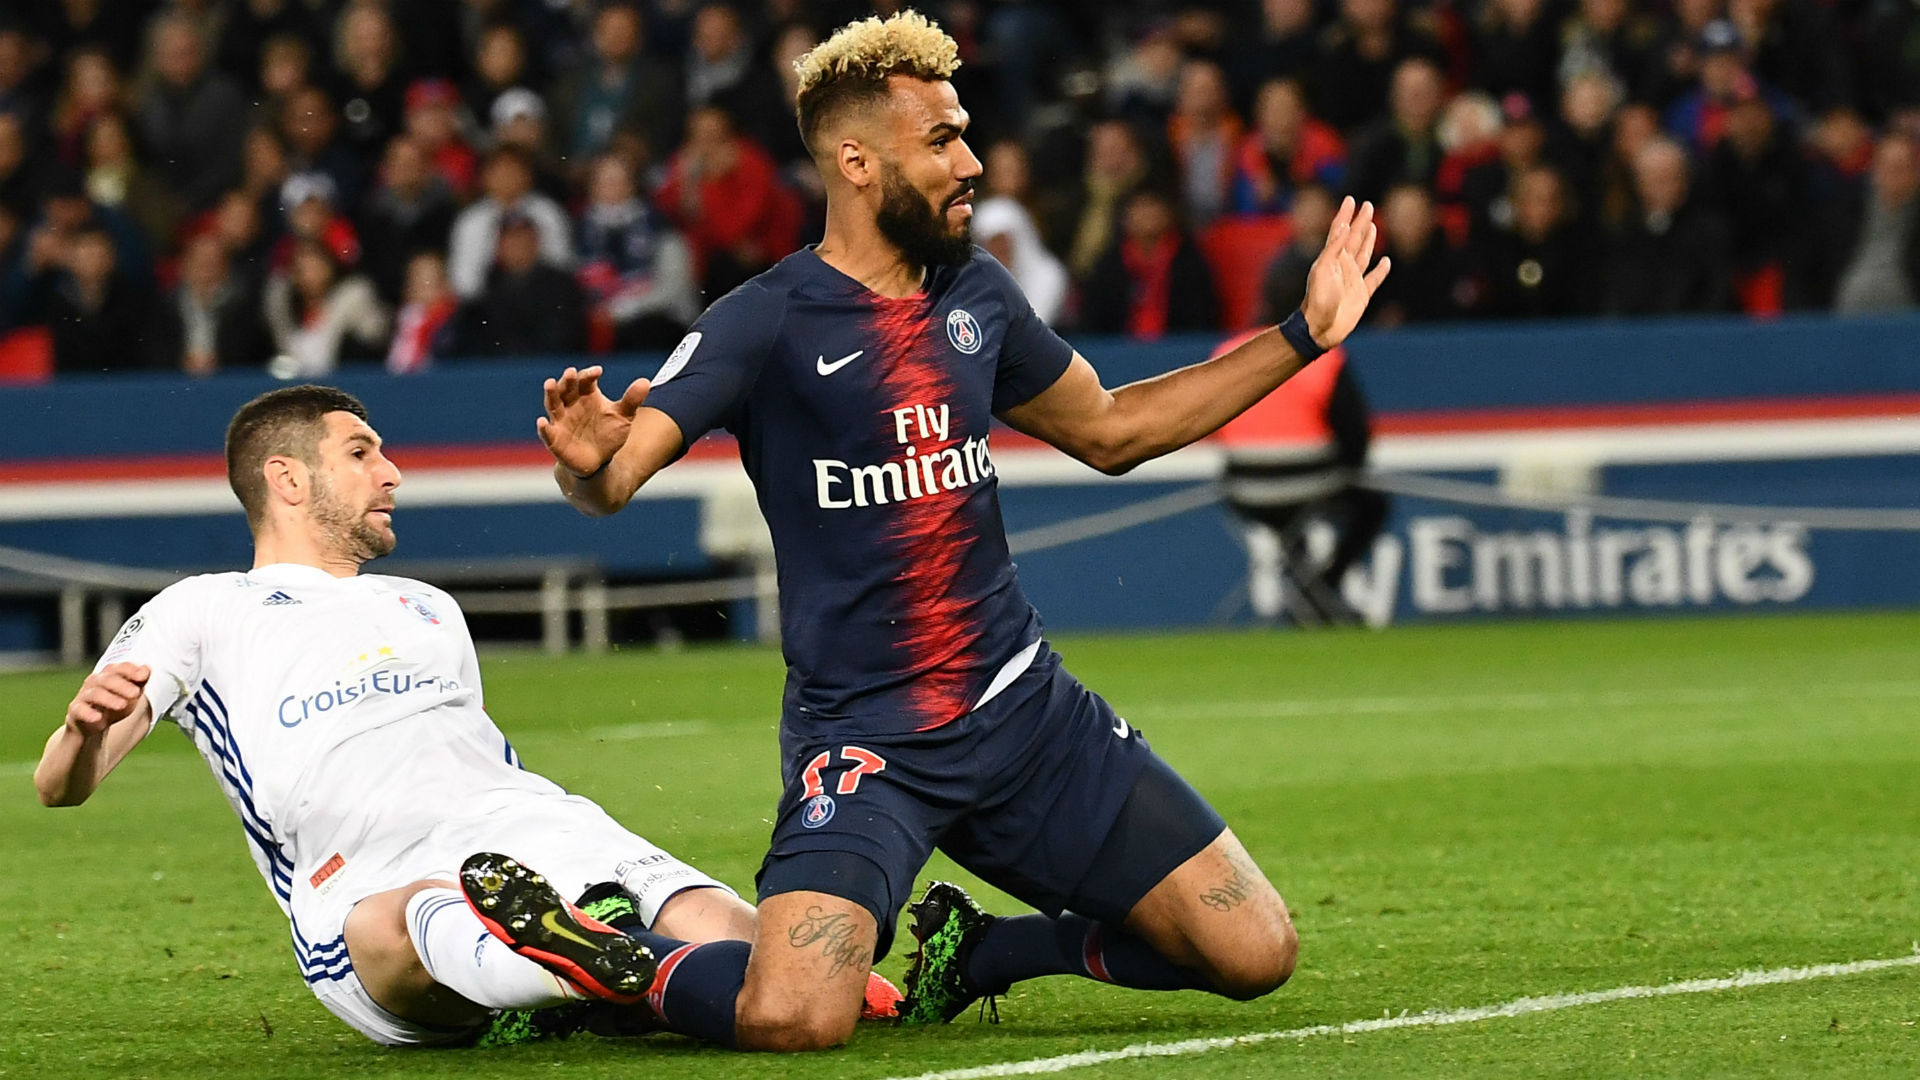 PSG forced to wait to clinch title after being held by Strasbourg